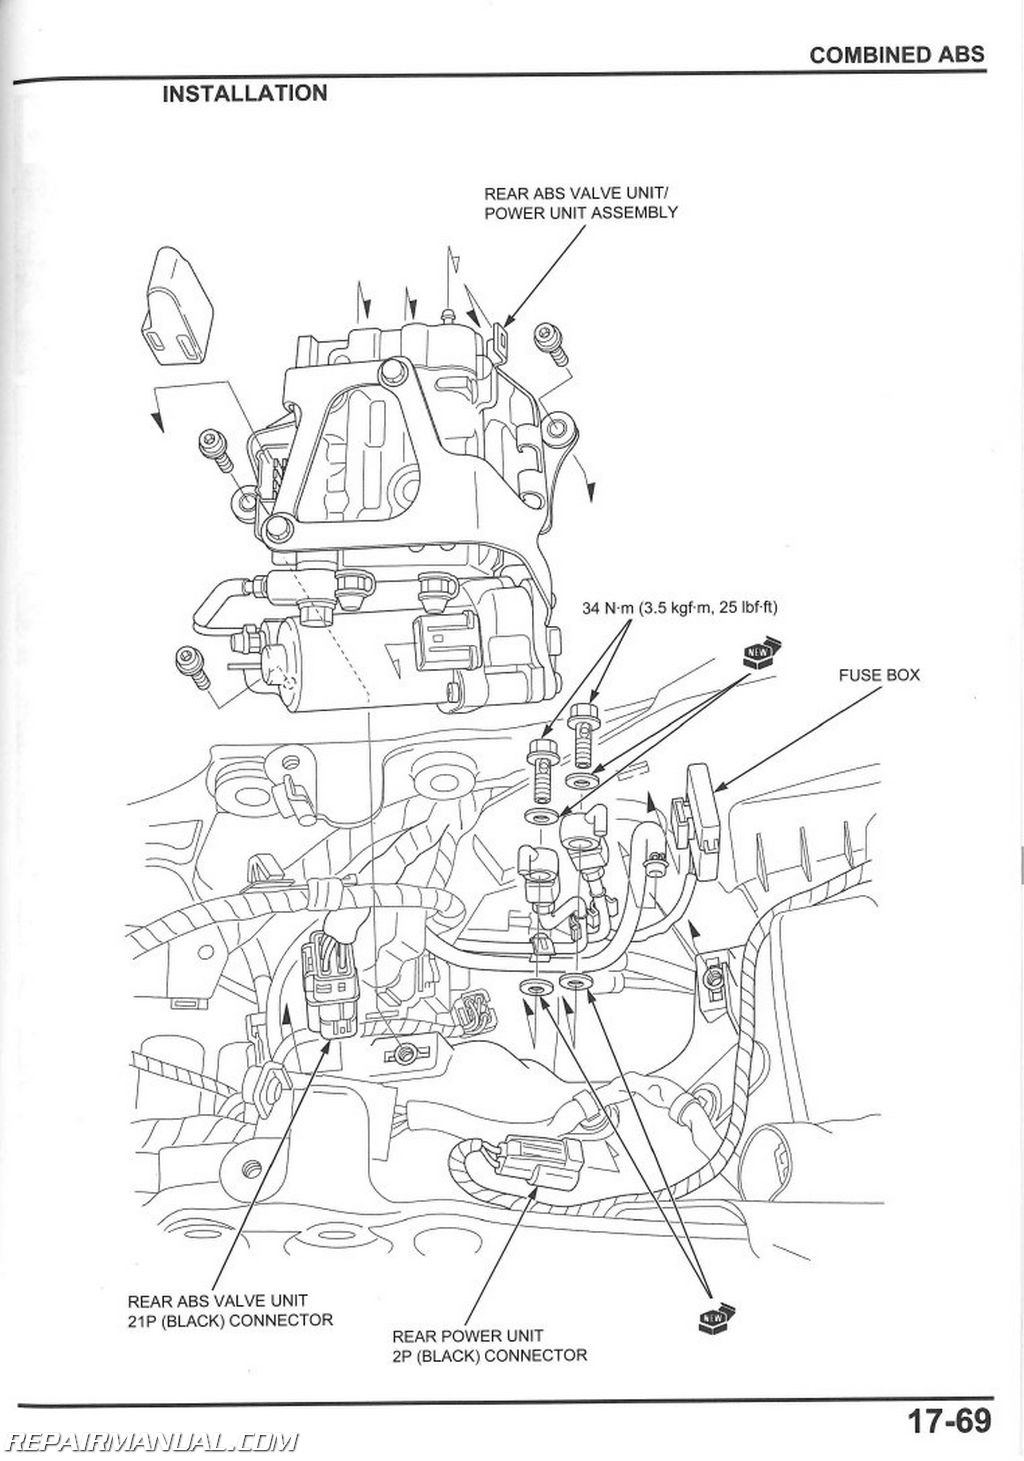 2008 2016 Honda Cbr1000rr Motorcycle Service Manual on nissan altima wiring diagram